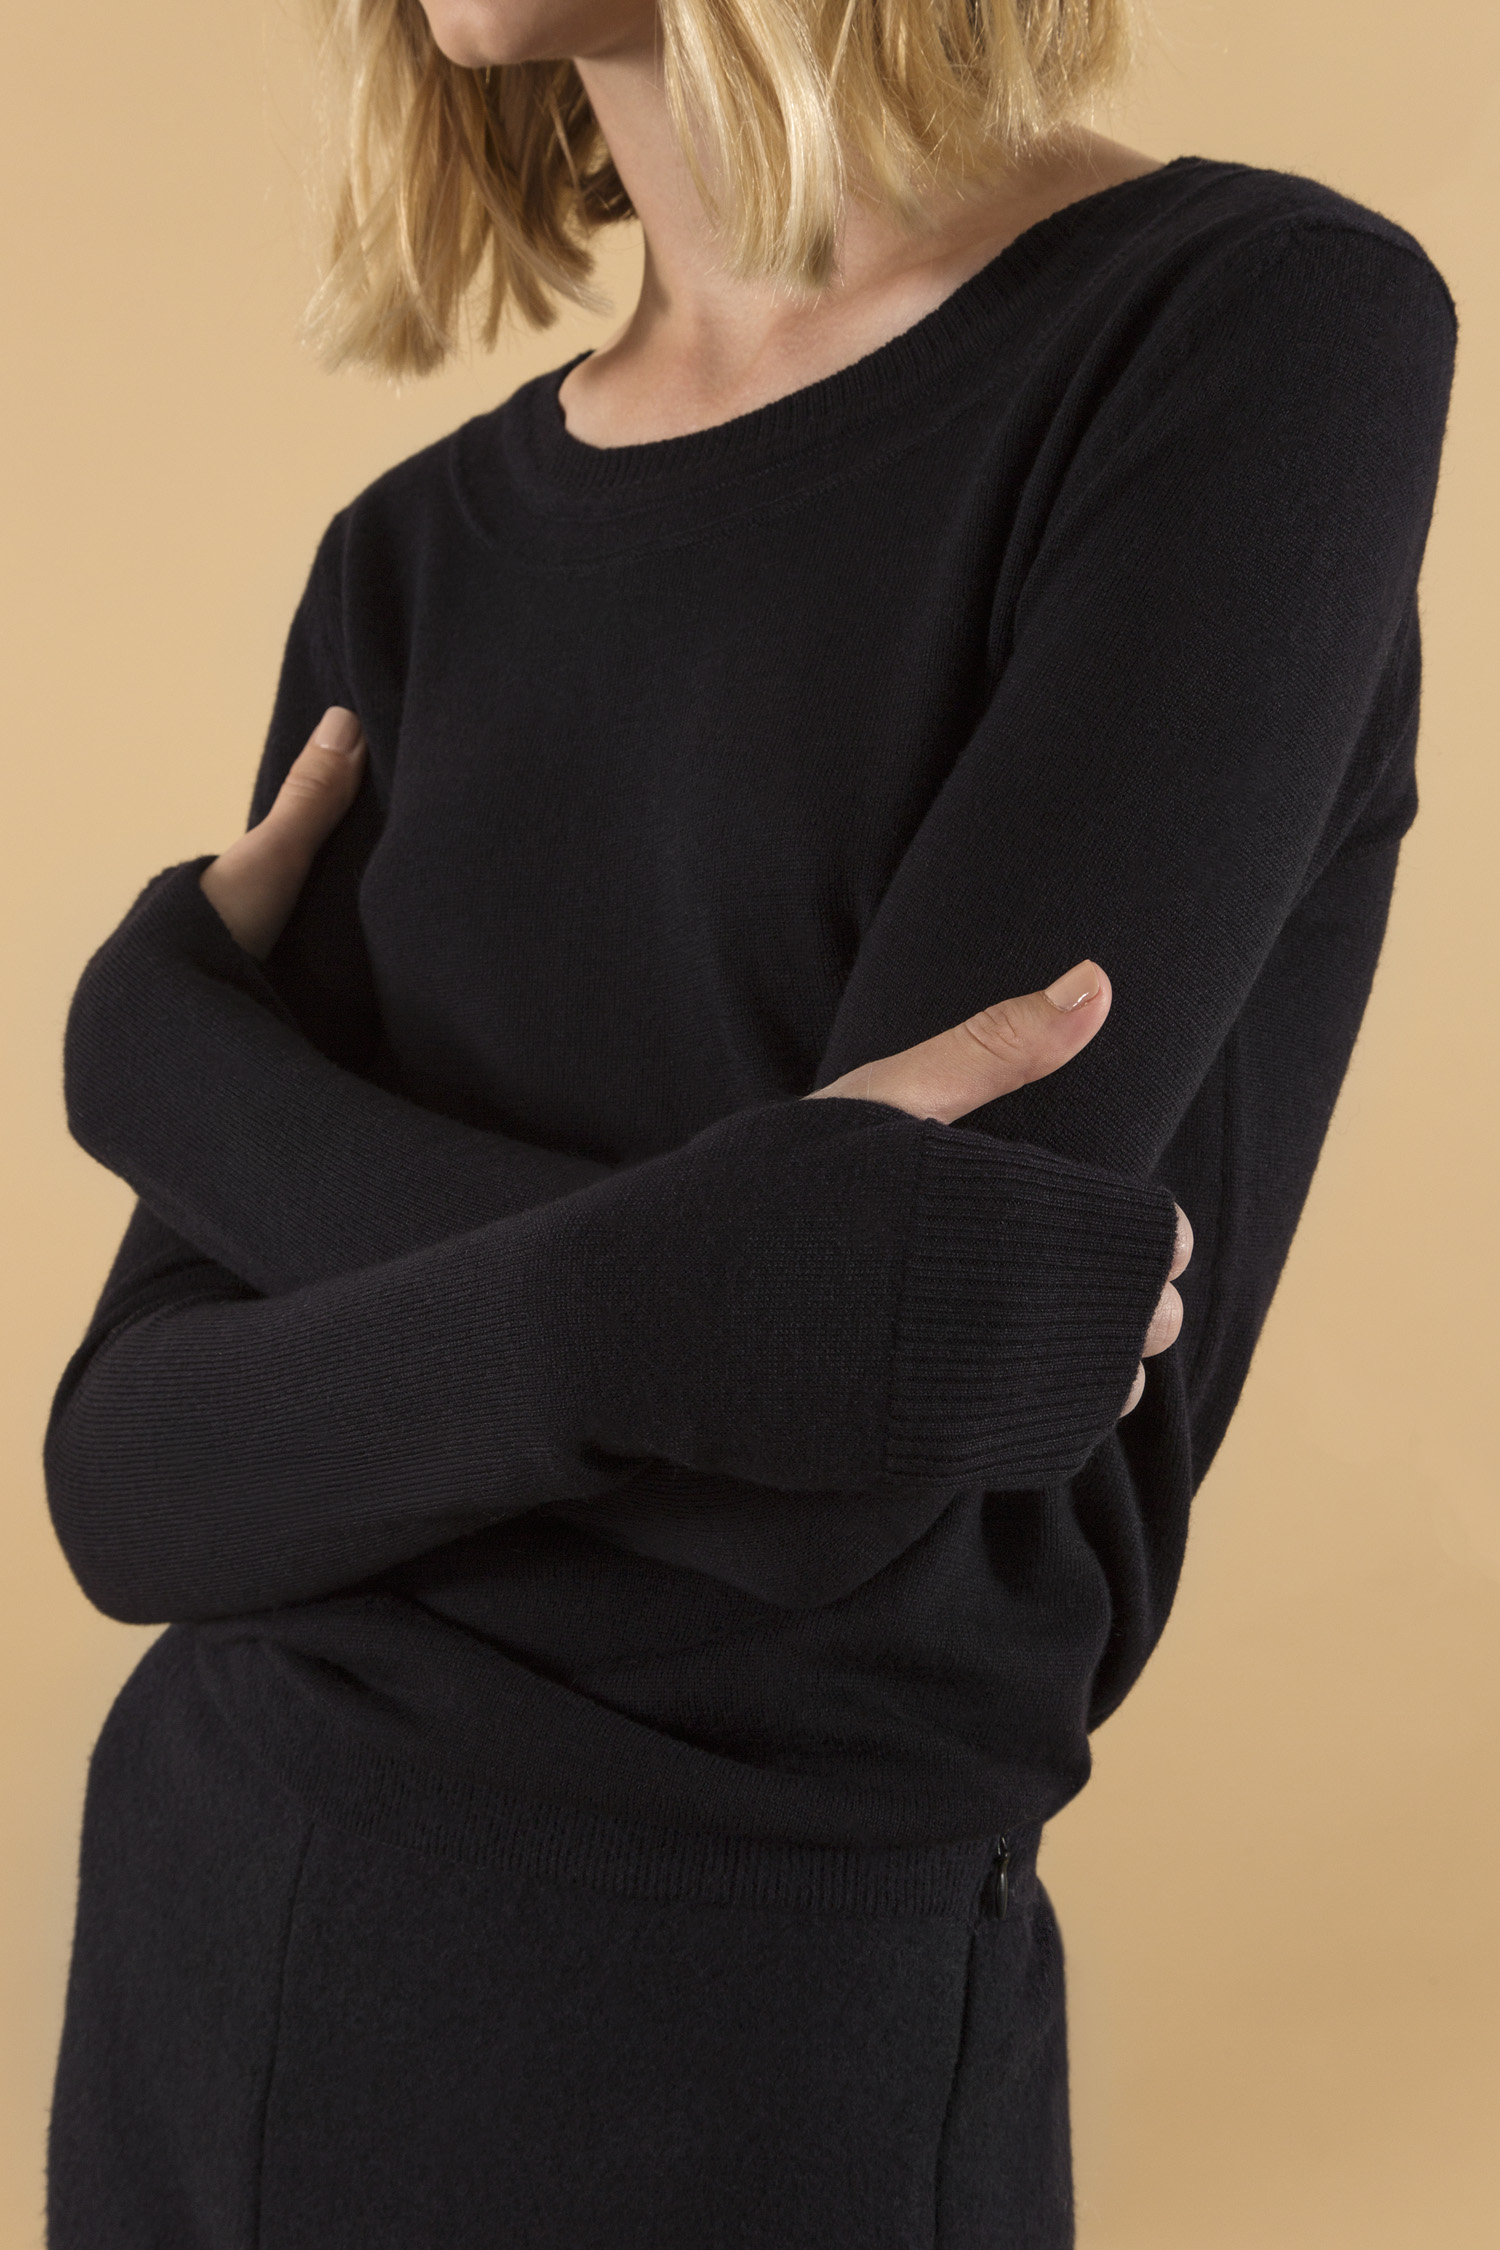 Grove sweater and Alice culottes, close up.jpg